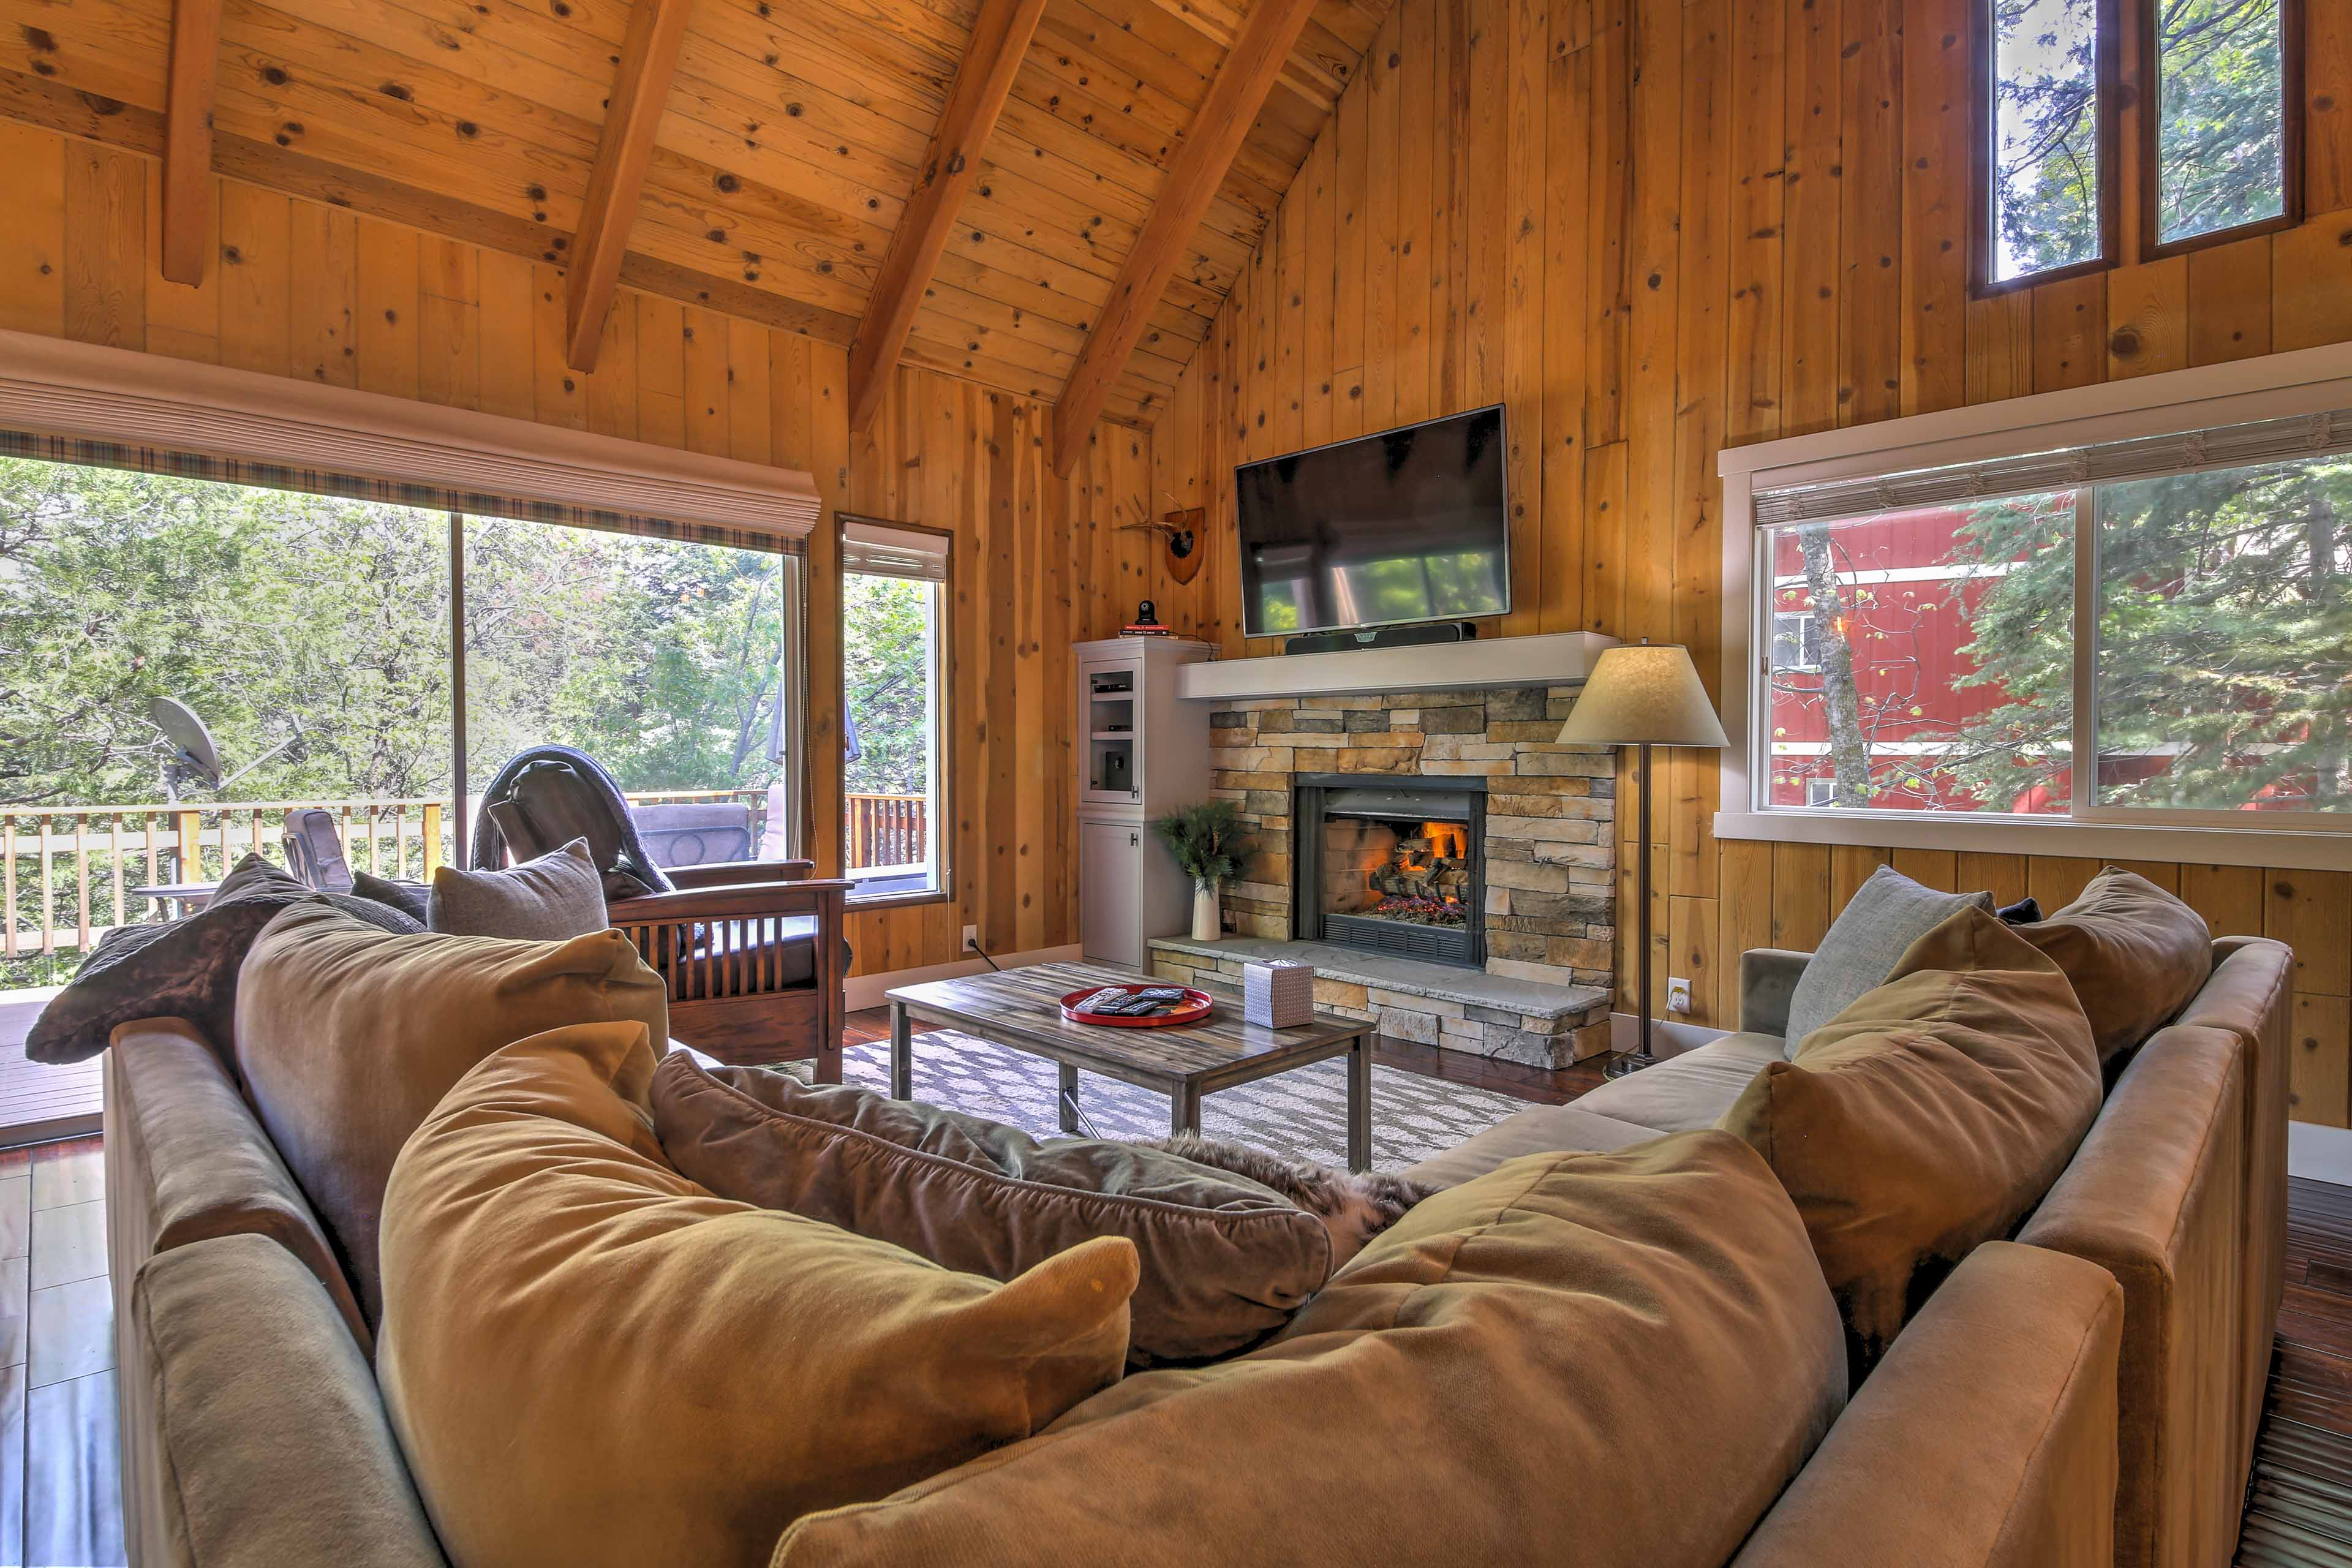 Book your Lake Arrowhead escape to this rustic-yet-polished home!